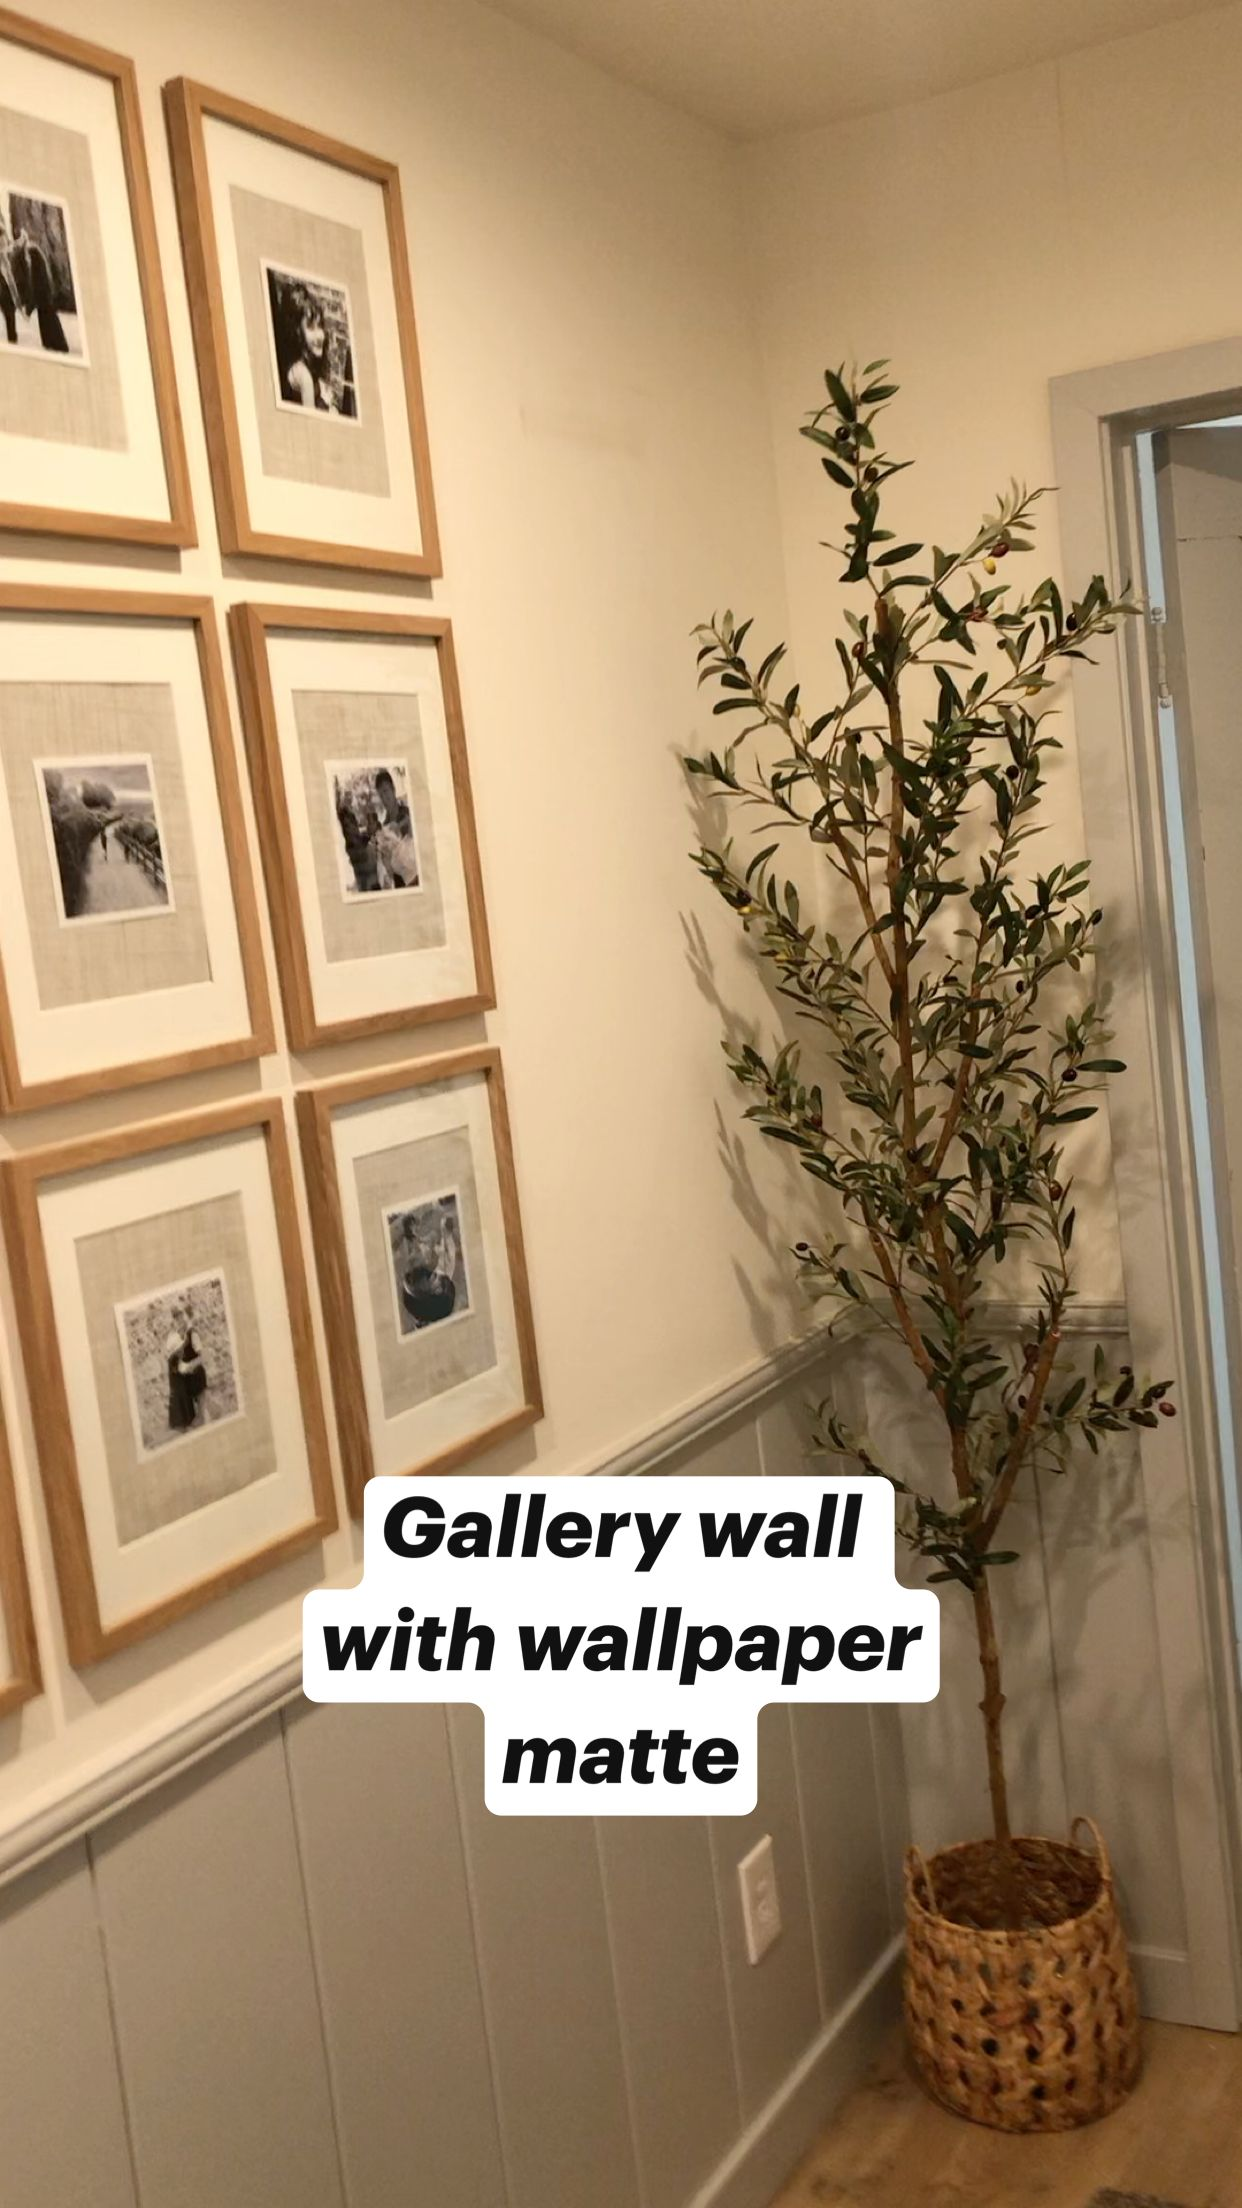 Photo of Gallery wall with wallpaper matte